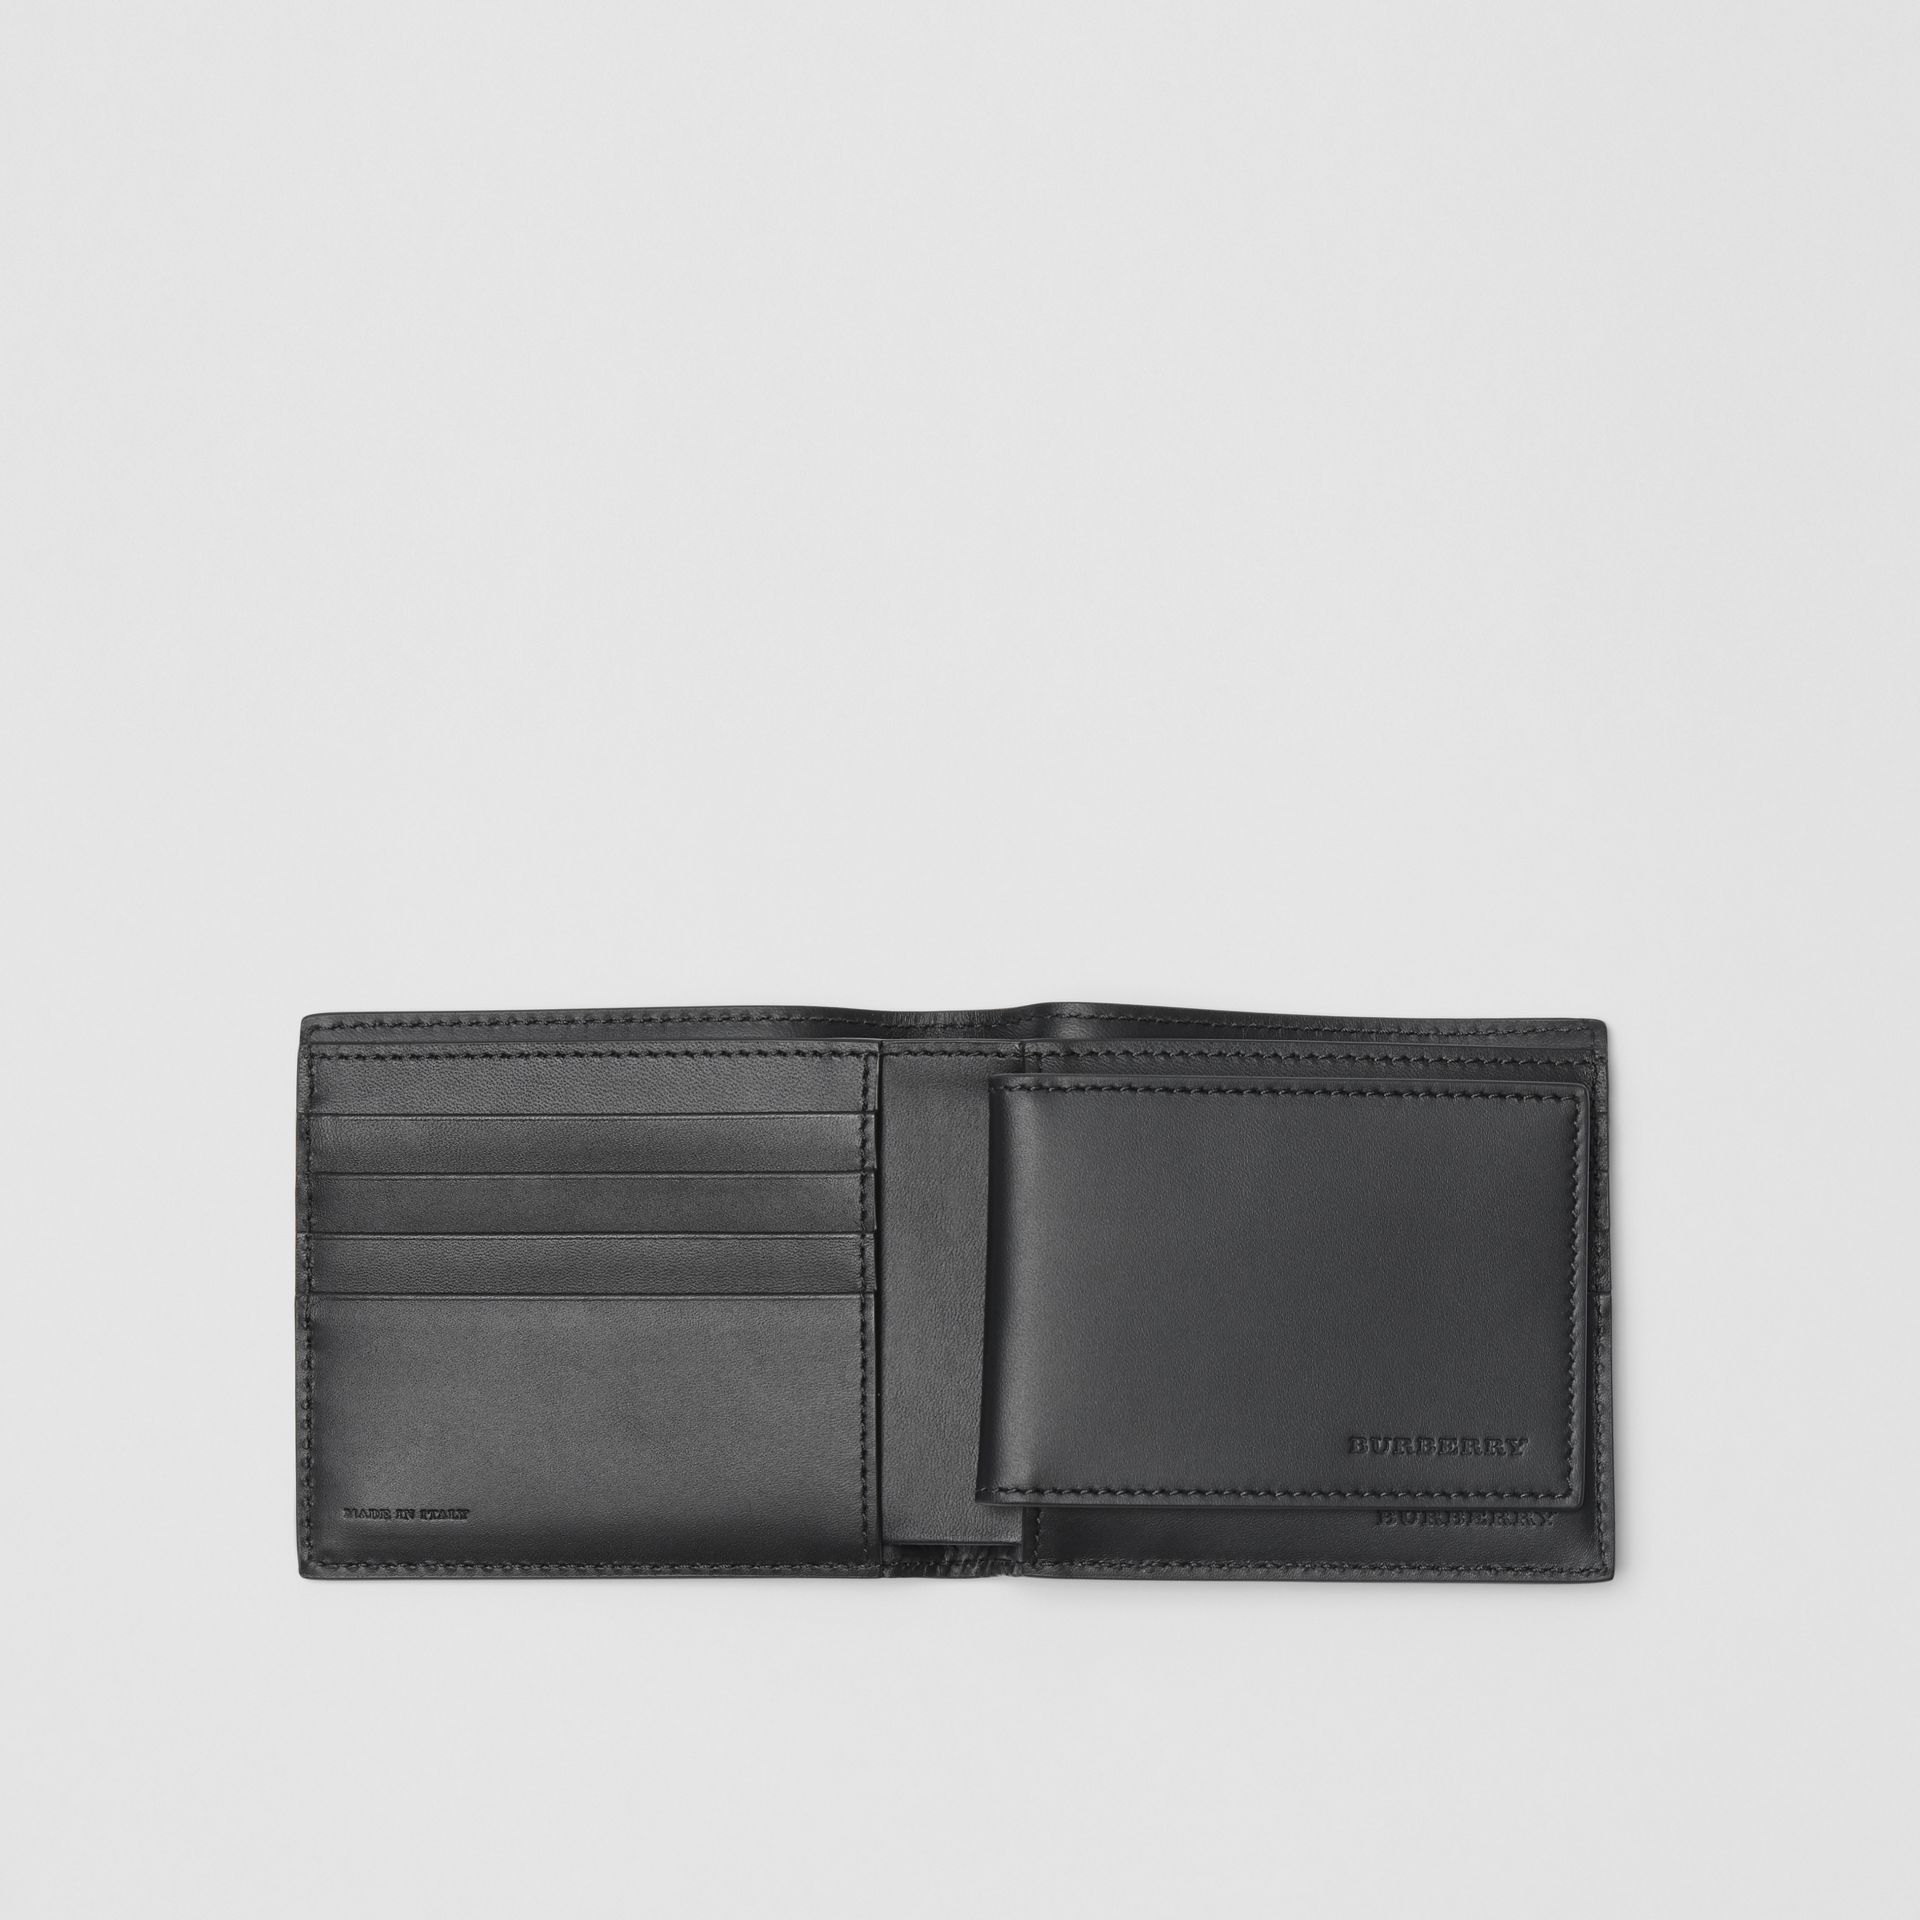 EKD London Leather Bifold Wallet with ID Card Case in Black - Men | Burberry Australia - gallery image 3